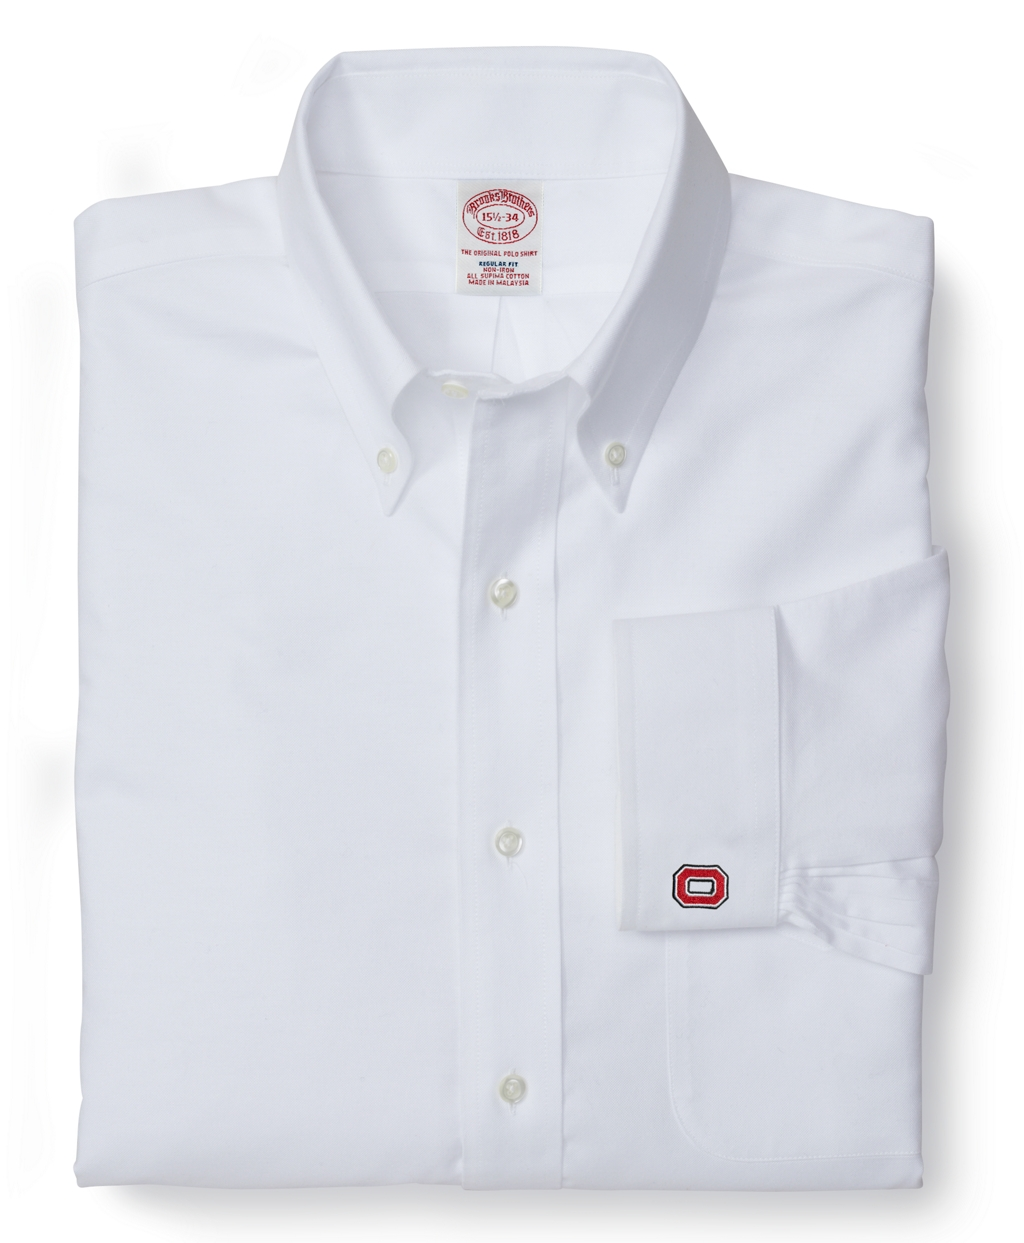 lyst brooks brothers ohio state university all cotton